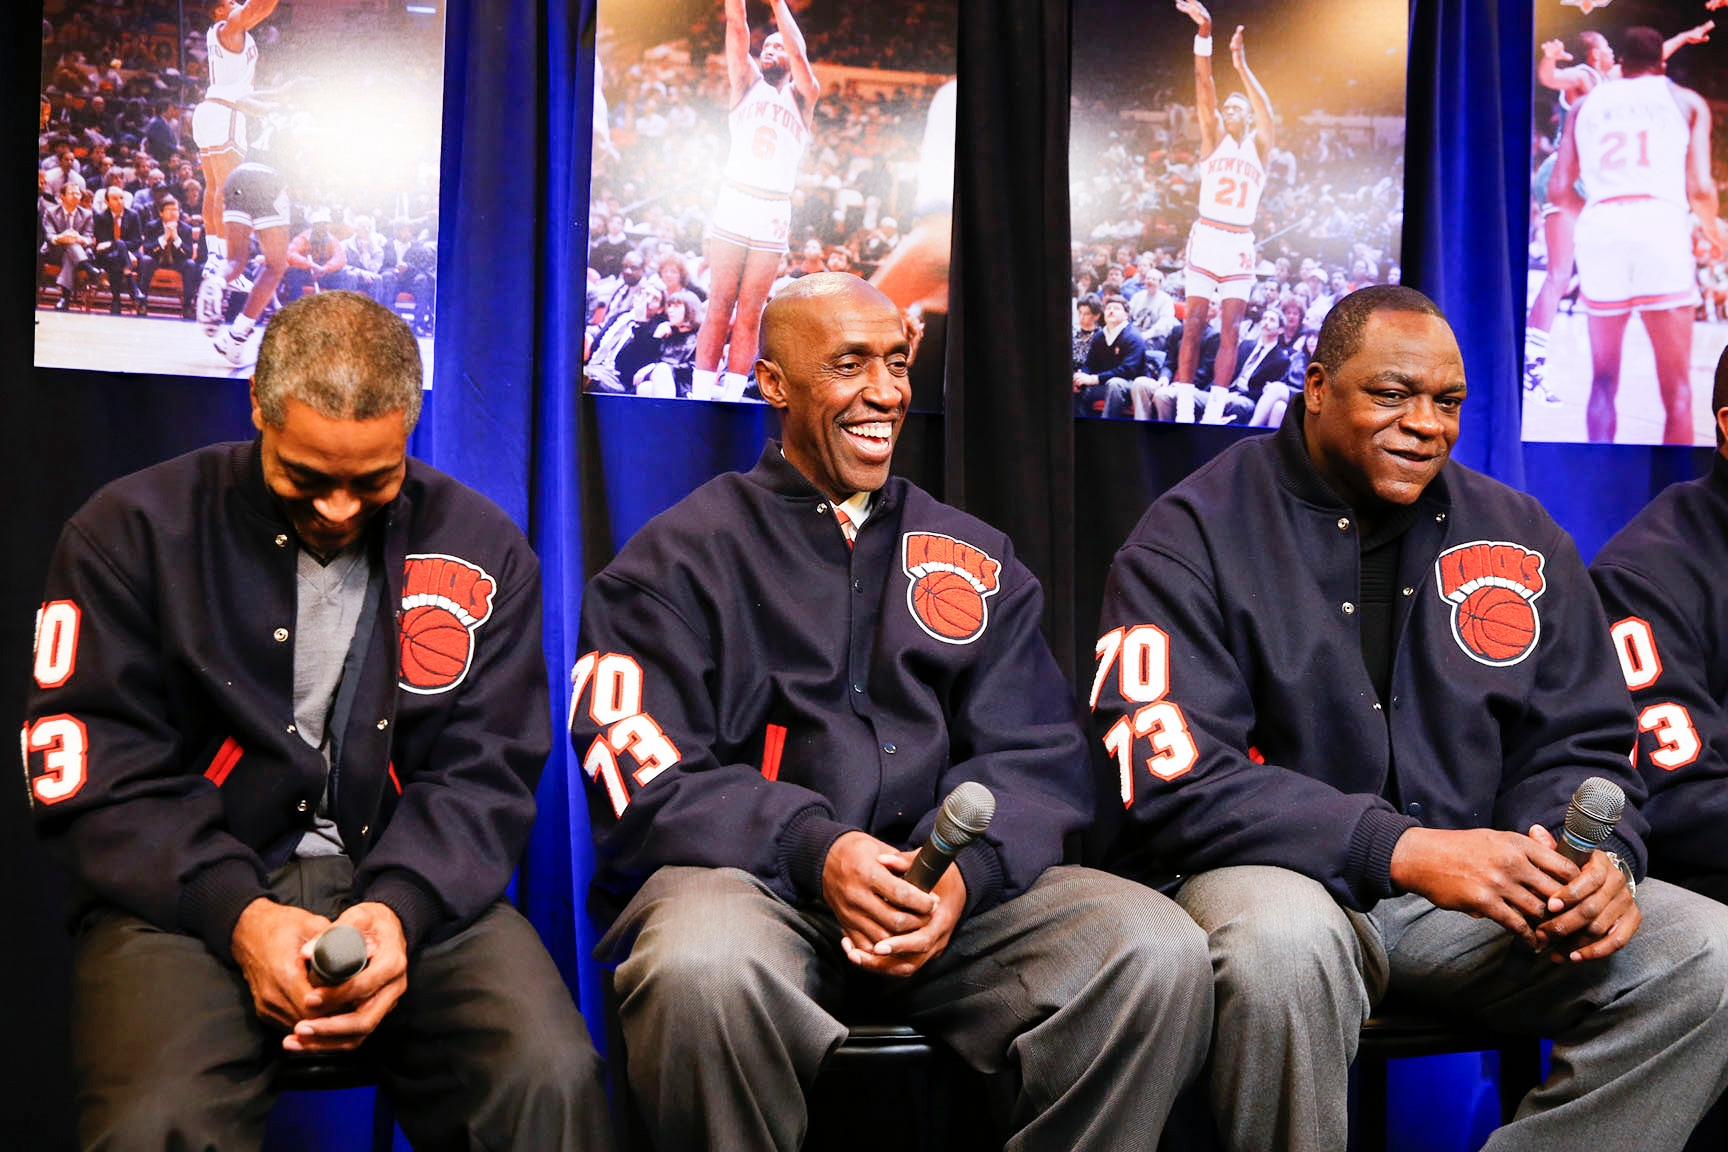 Gallery The 1988 89 3 Point Shooters Reunite At The Garden New York Knicks